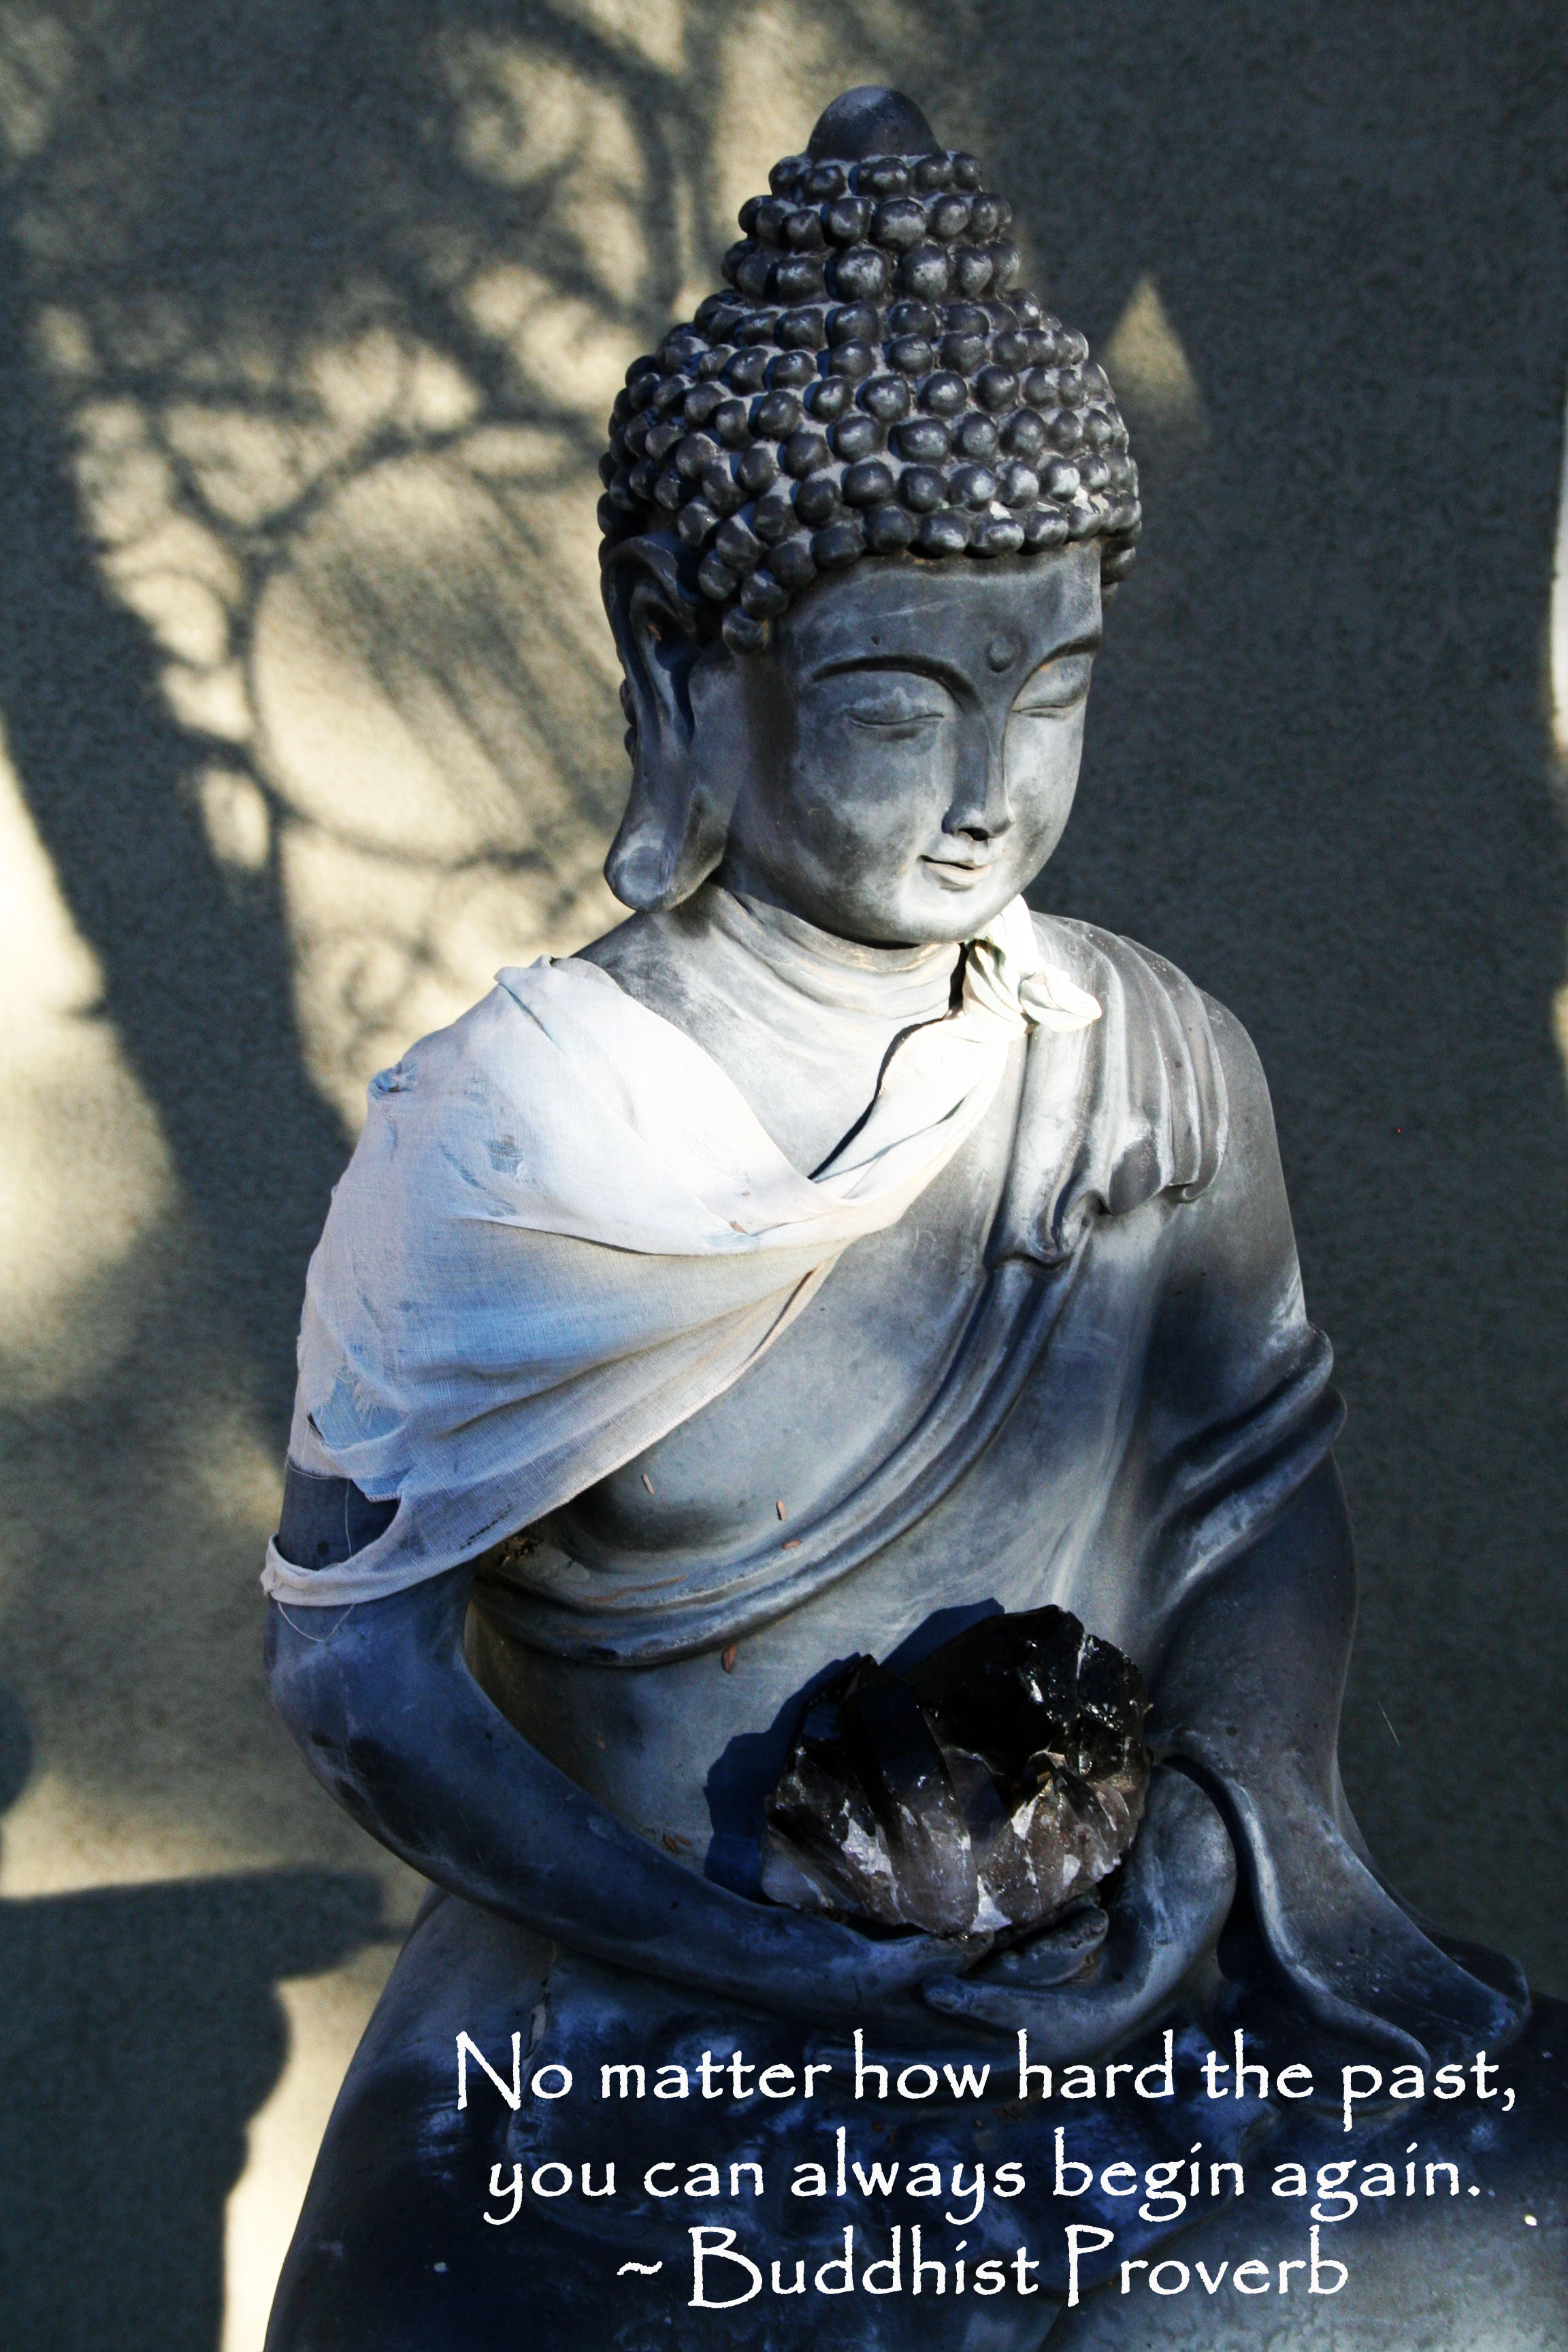 """No matter how hard the past, you can always begin again."" - Buddhist proverb on a photo of a buddha."